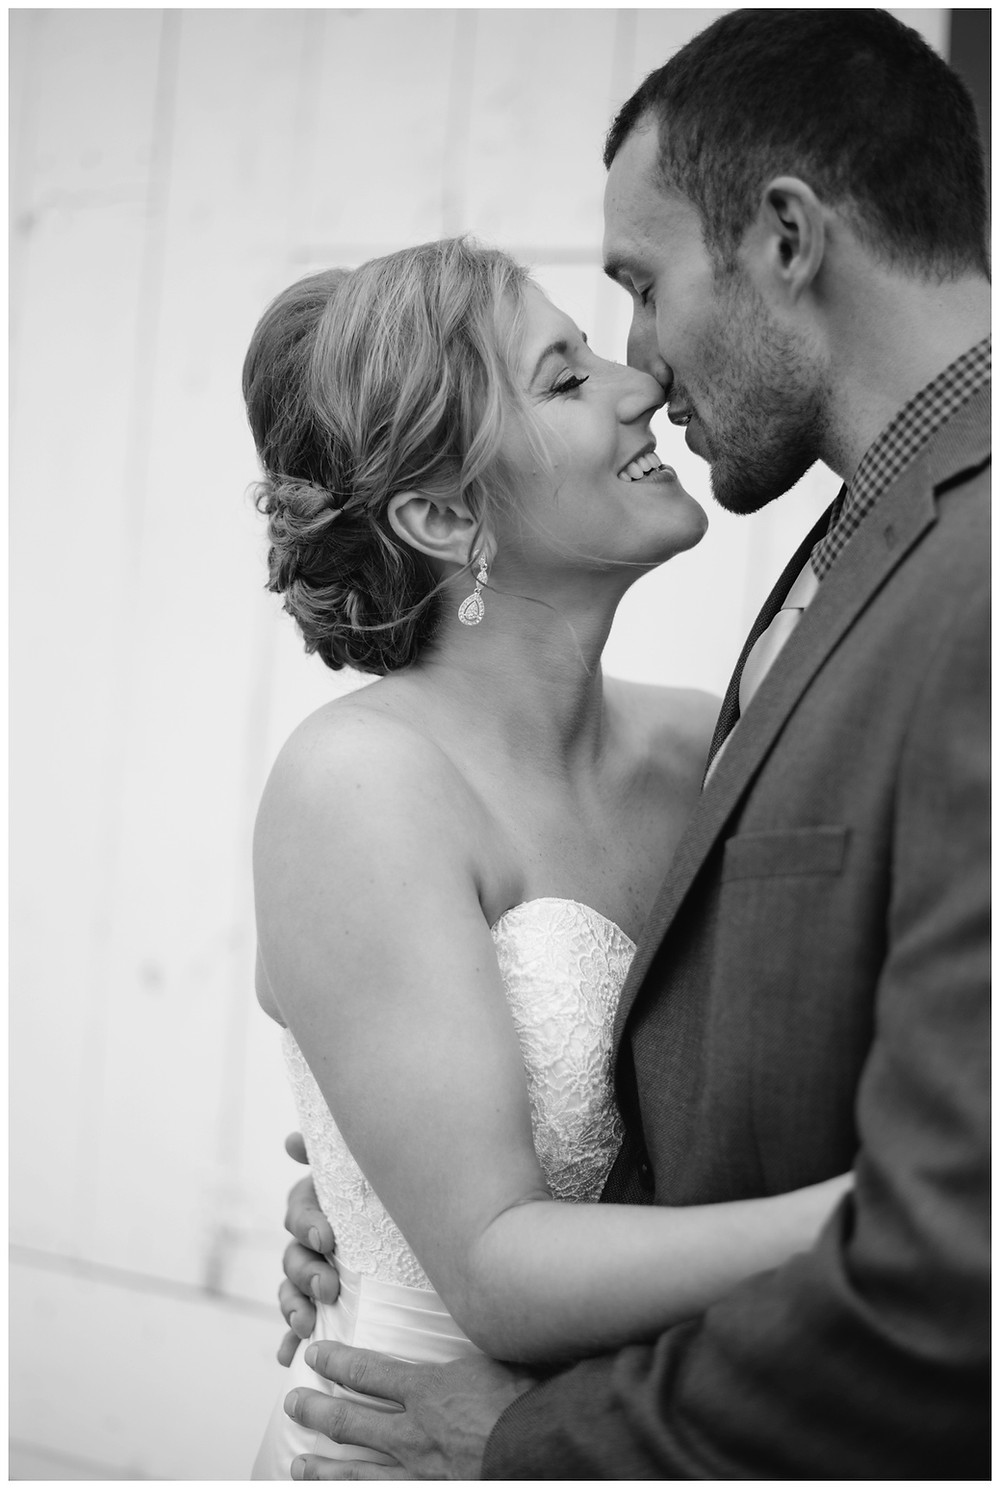 bride-and-groom-about-kiss-at-brighton-acres-wedding-by-green-bay-wedding-photographer-kyra-rane-photography